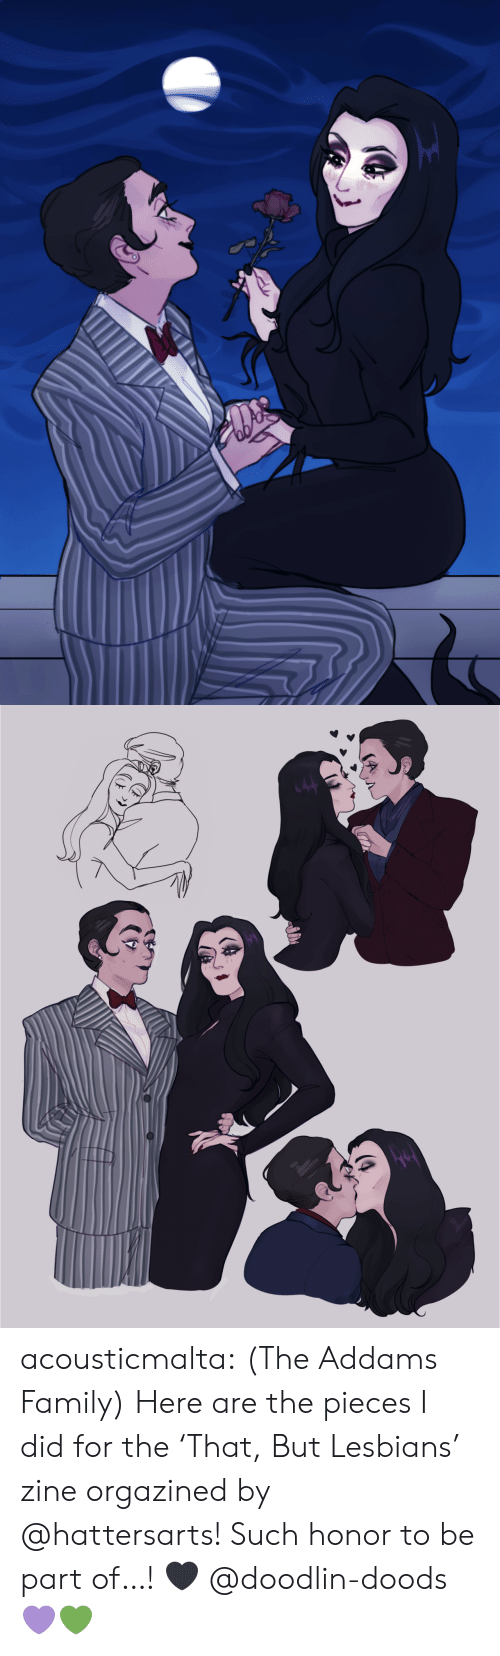 Family, Lesbians, and Tumblr: acousticmalta:   (The Addams Family) Here are the pieces I did for the 'That, But Lesbians' zine orgazined by @hattersarts! Such honor to be part of…! 🖤   @doodlin-doods 💜💚